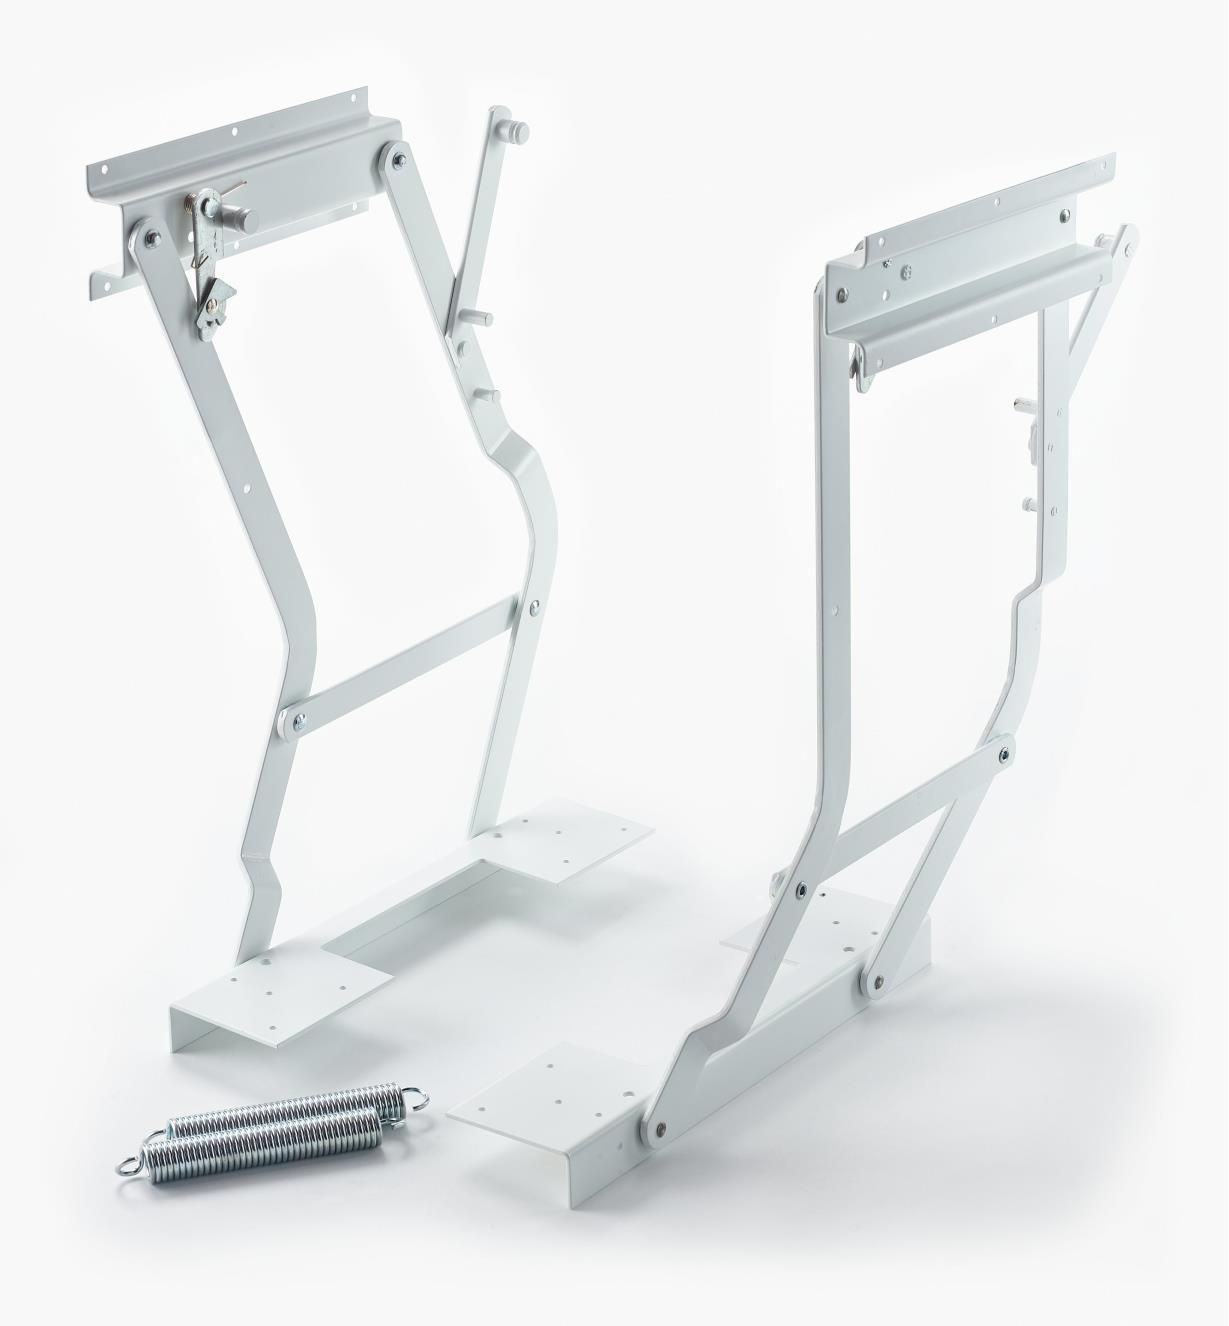 12K2701 - Appliance Lifter Brackets